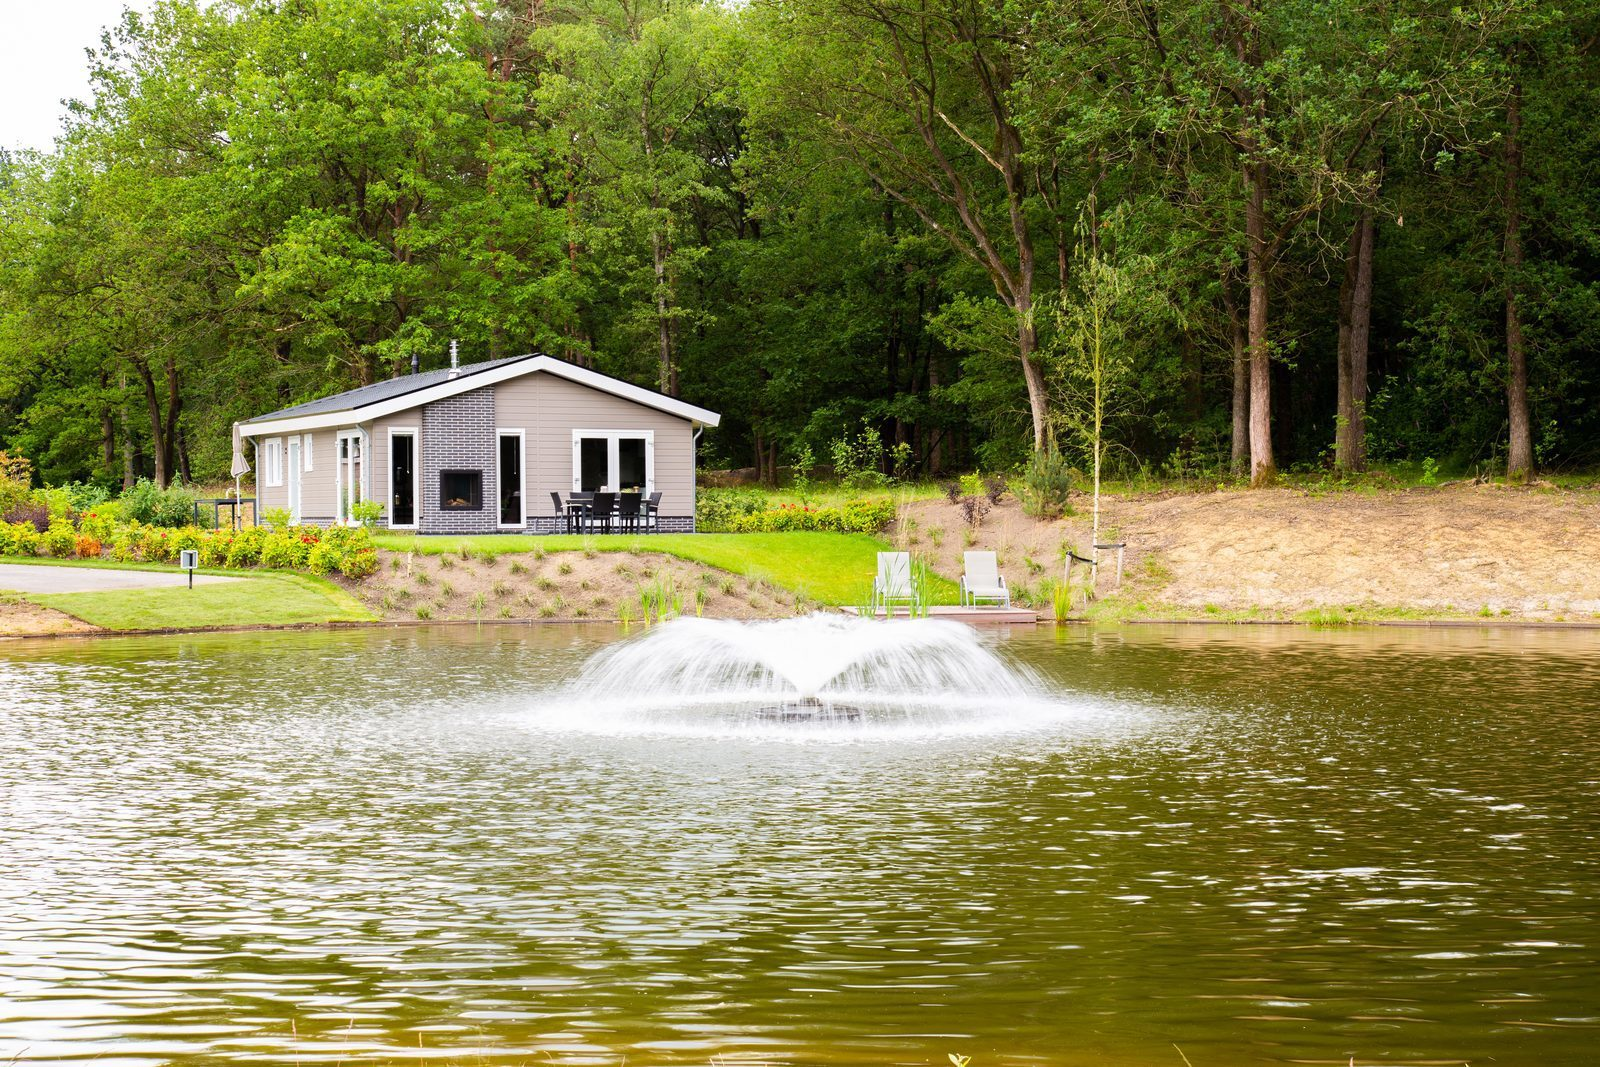 Discover Our Newest Holiday Park At The Veluwe Topparken Sale - Sauna De Veluwe